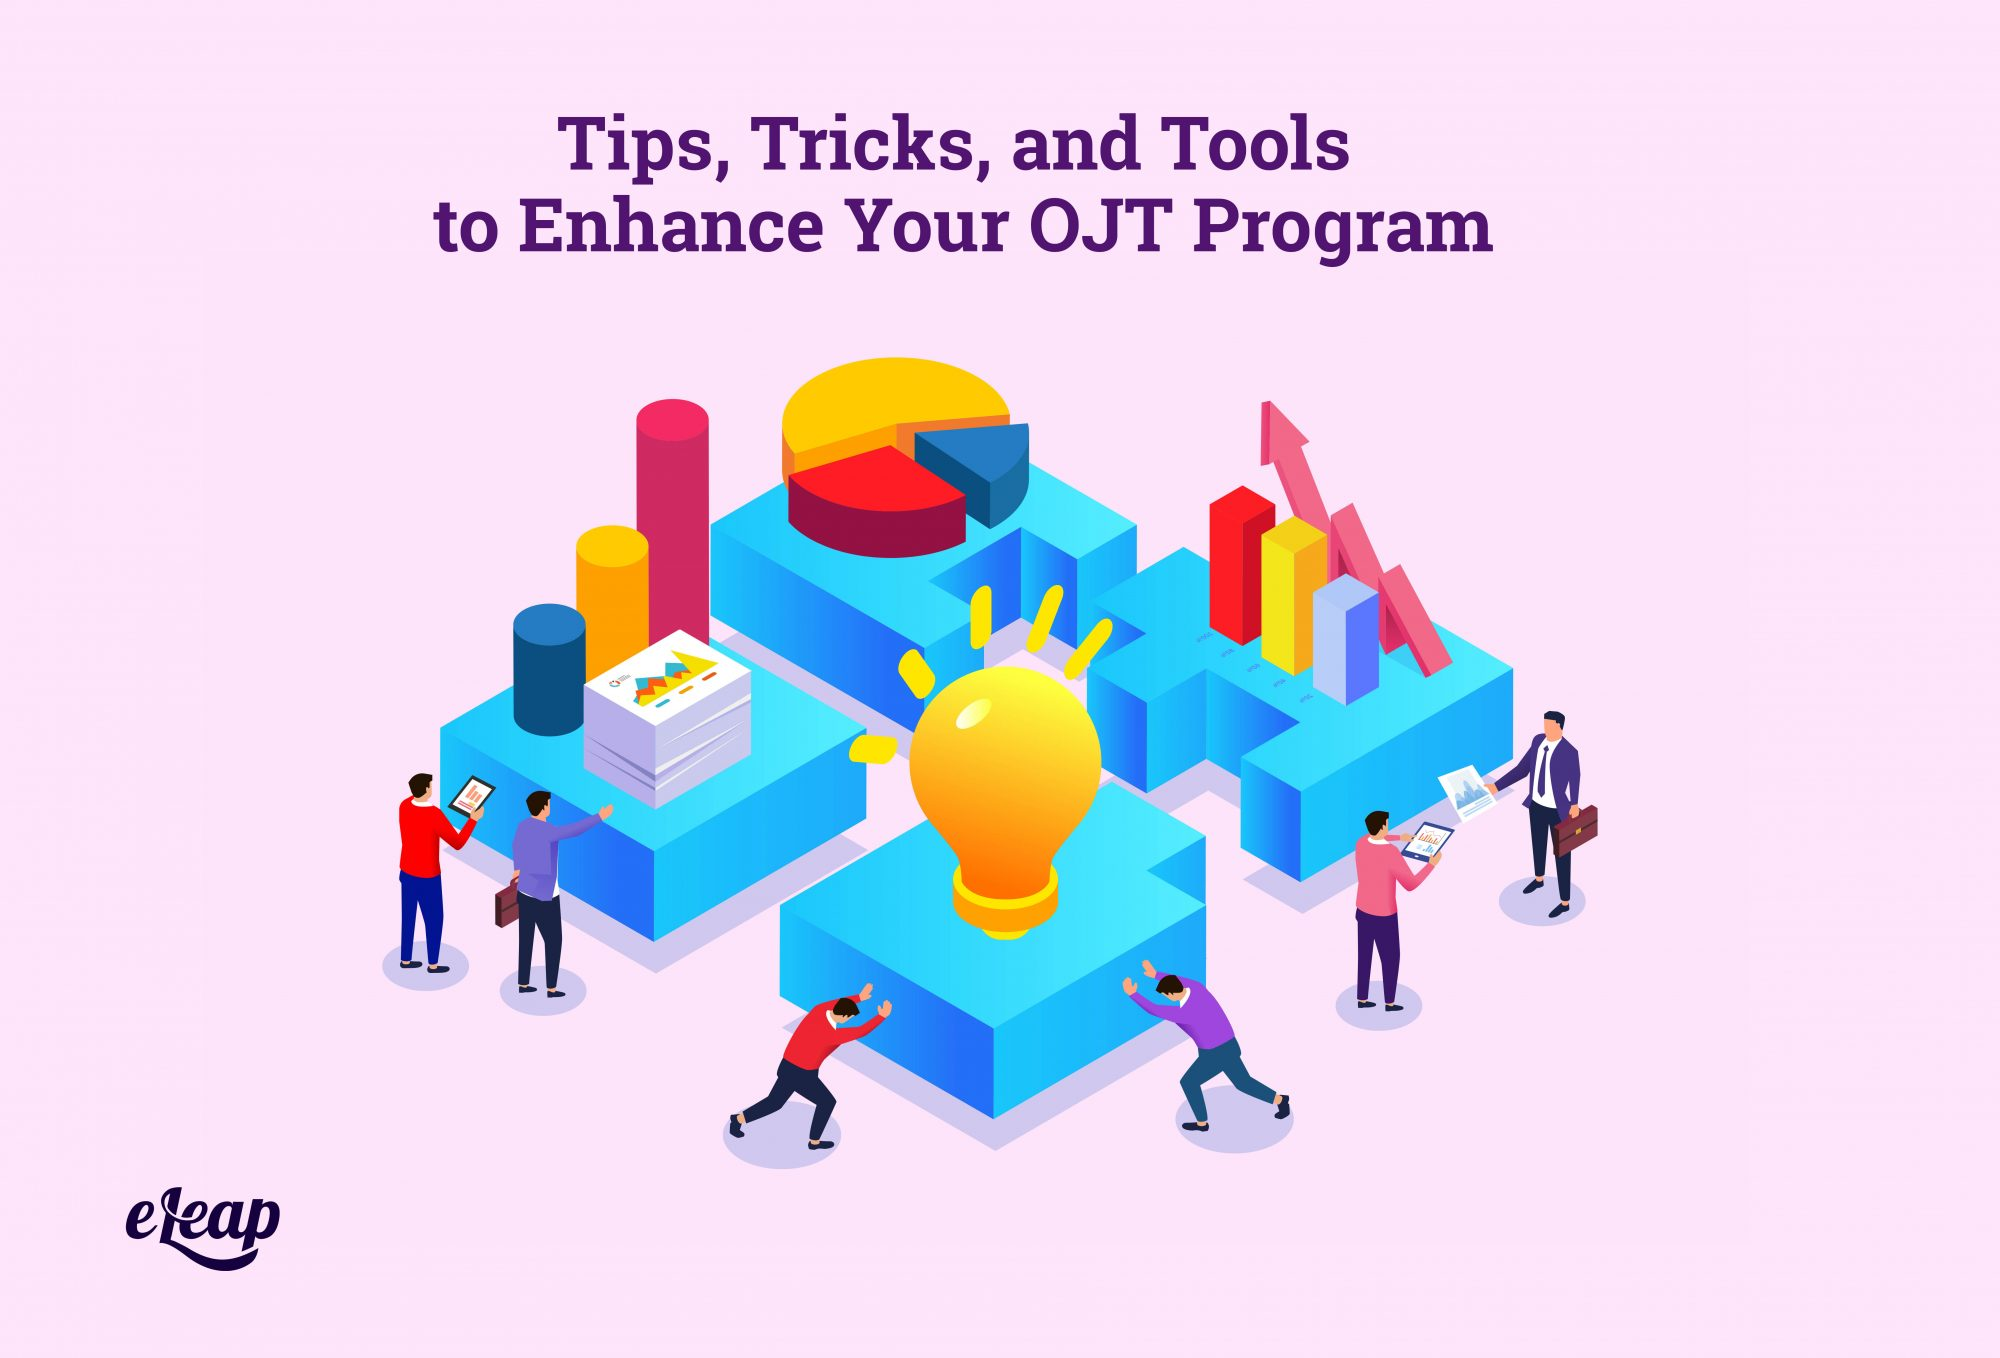 Tips, Tricks, and Tools to Enhance Your OJT Program